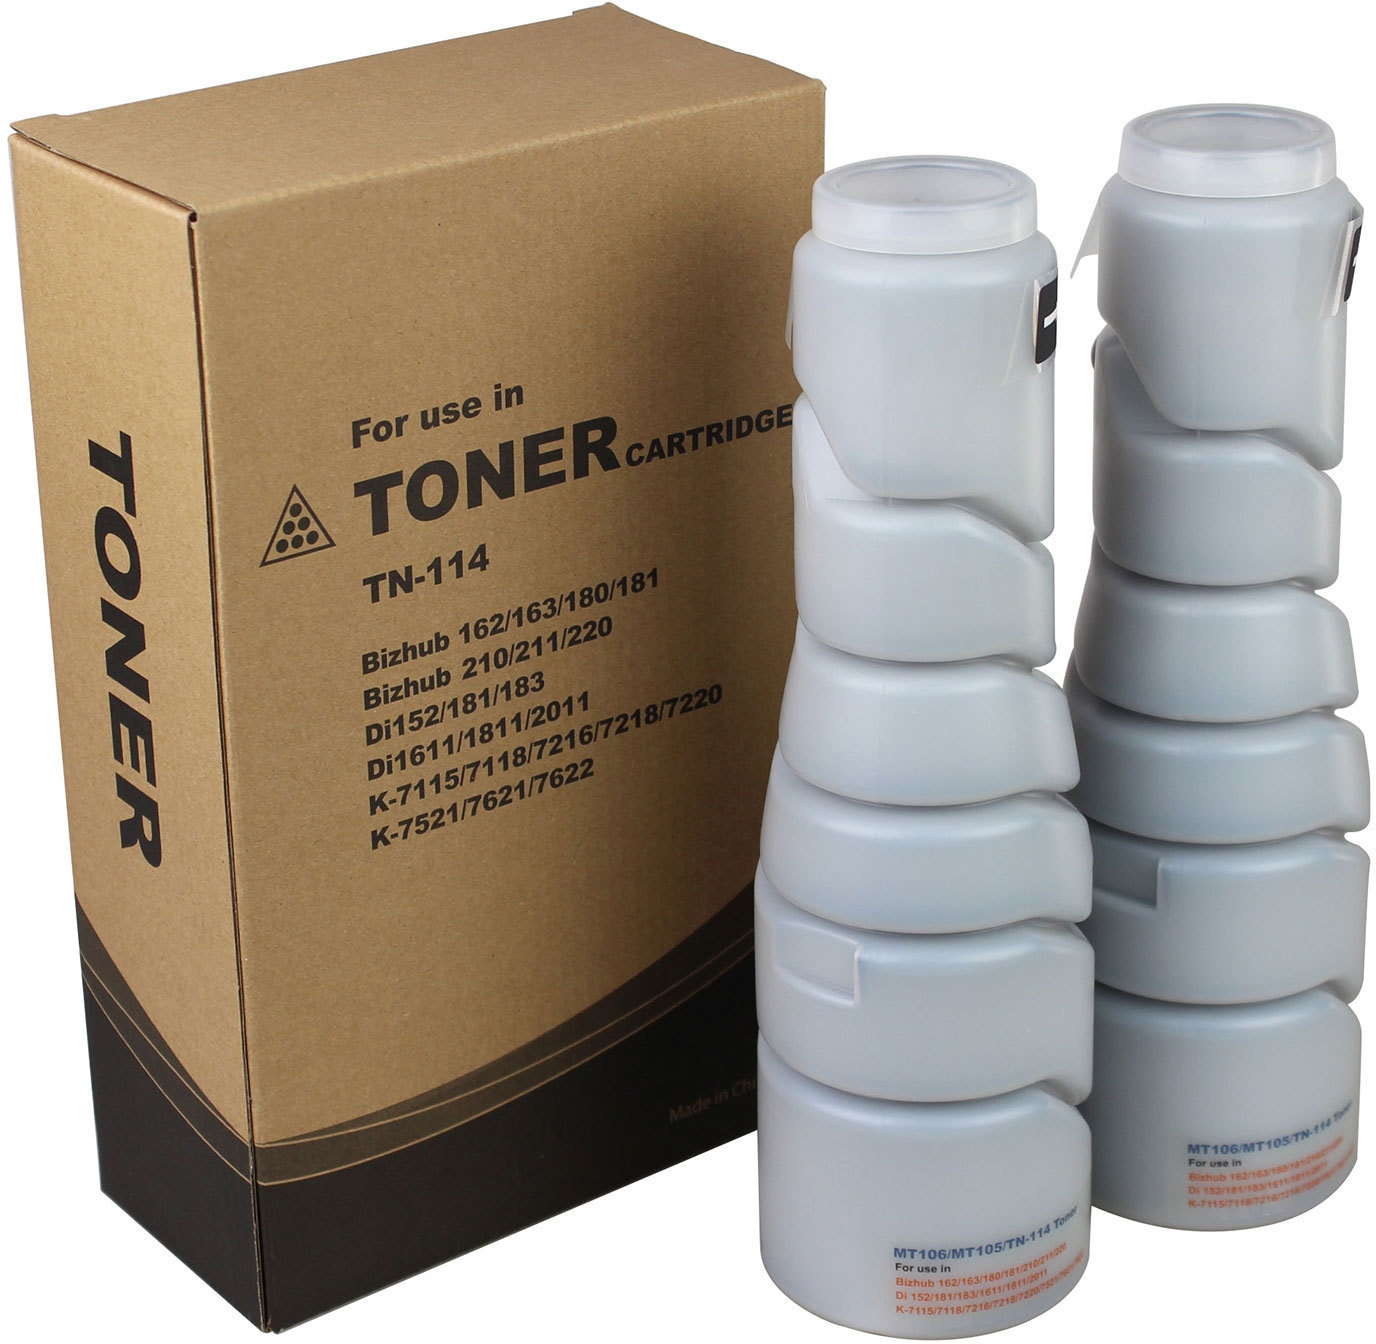 Konica Minolta 8937-782 8936-402 8936-602 8937-708 TN114  TN-114 Black Copier Toner Cartridge